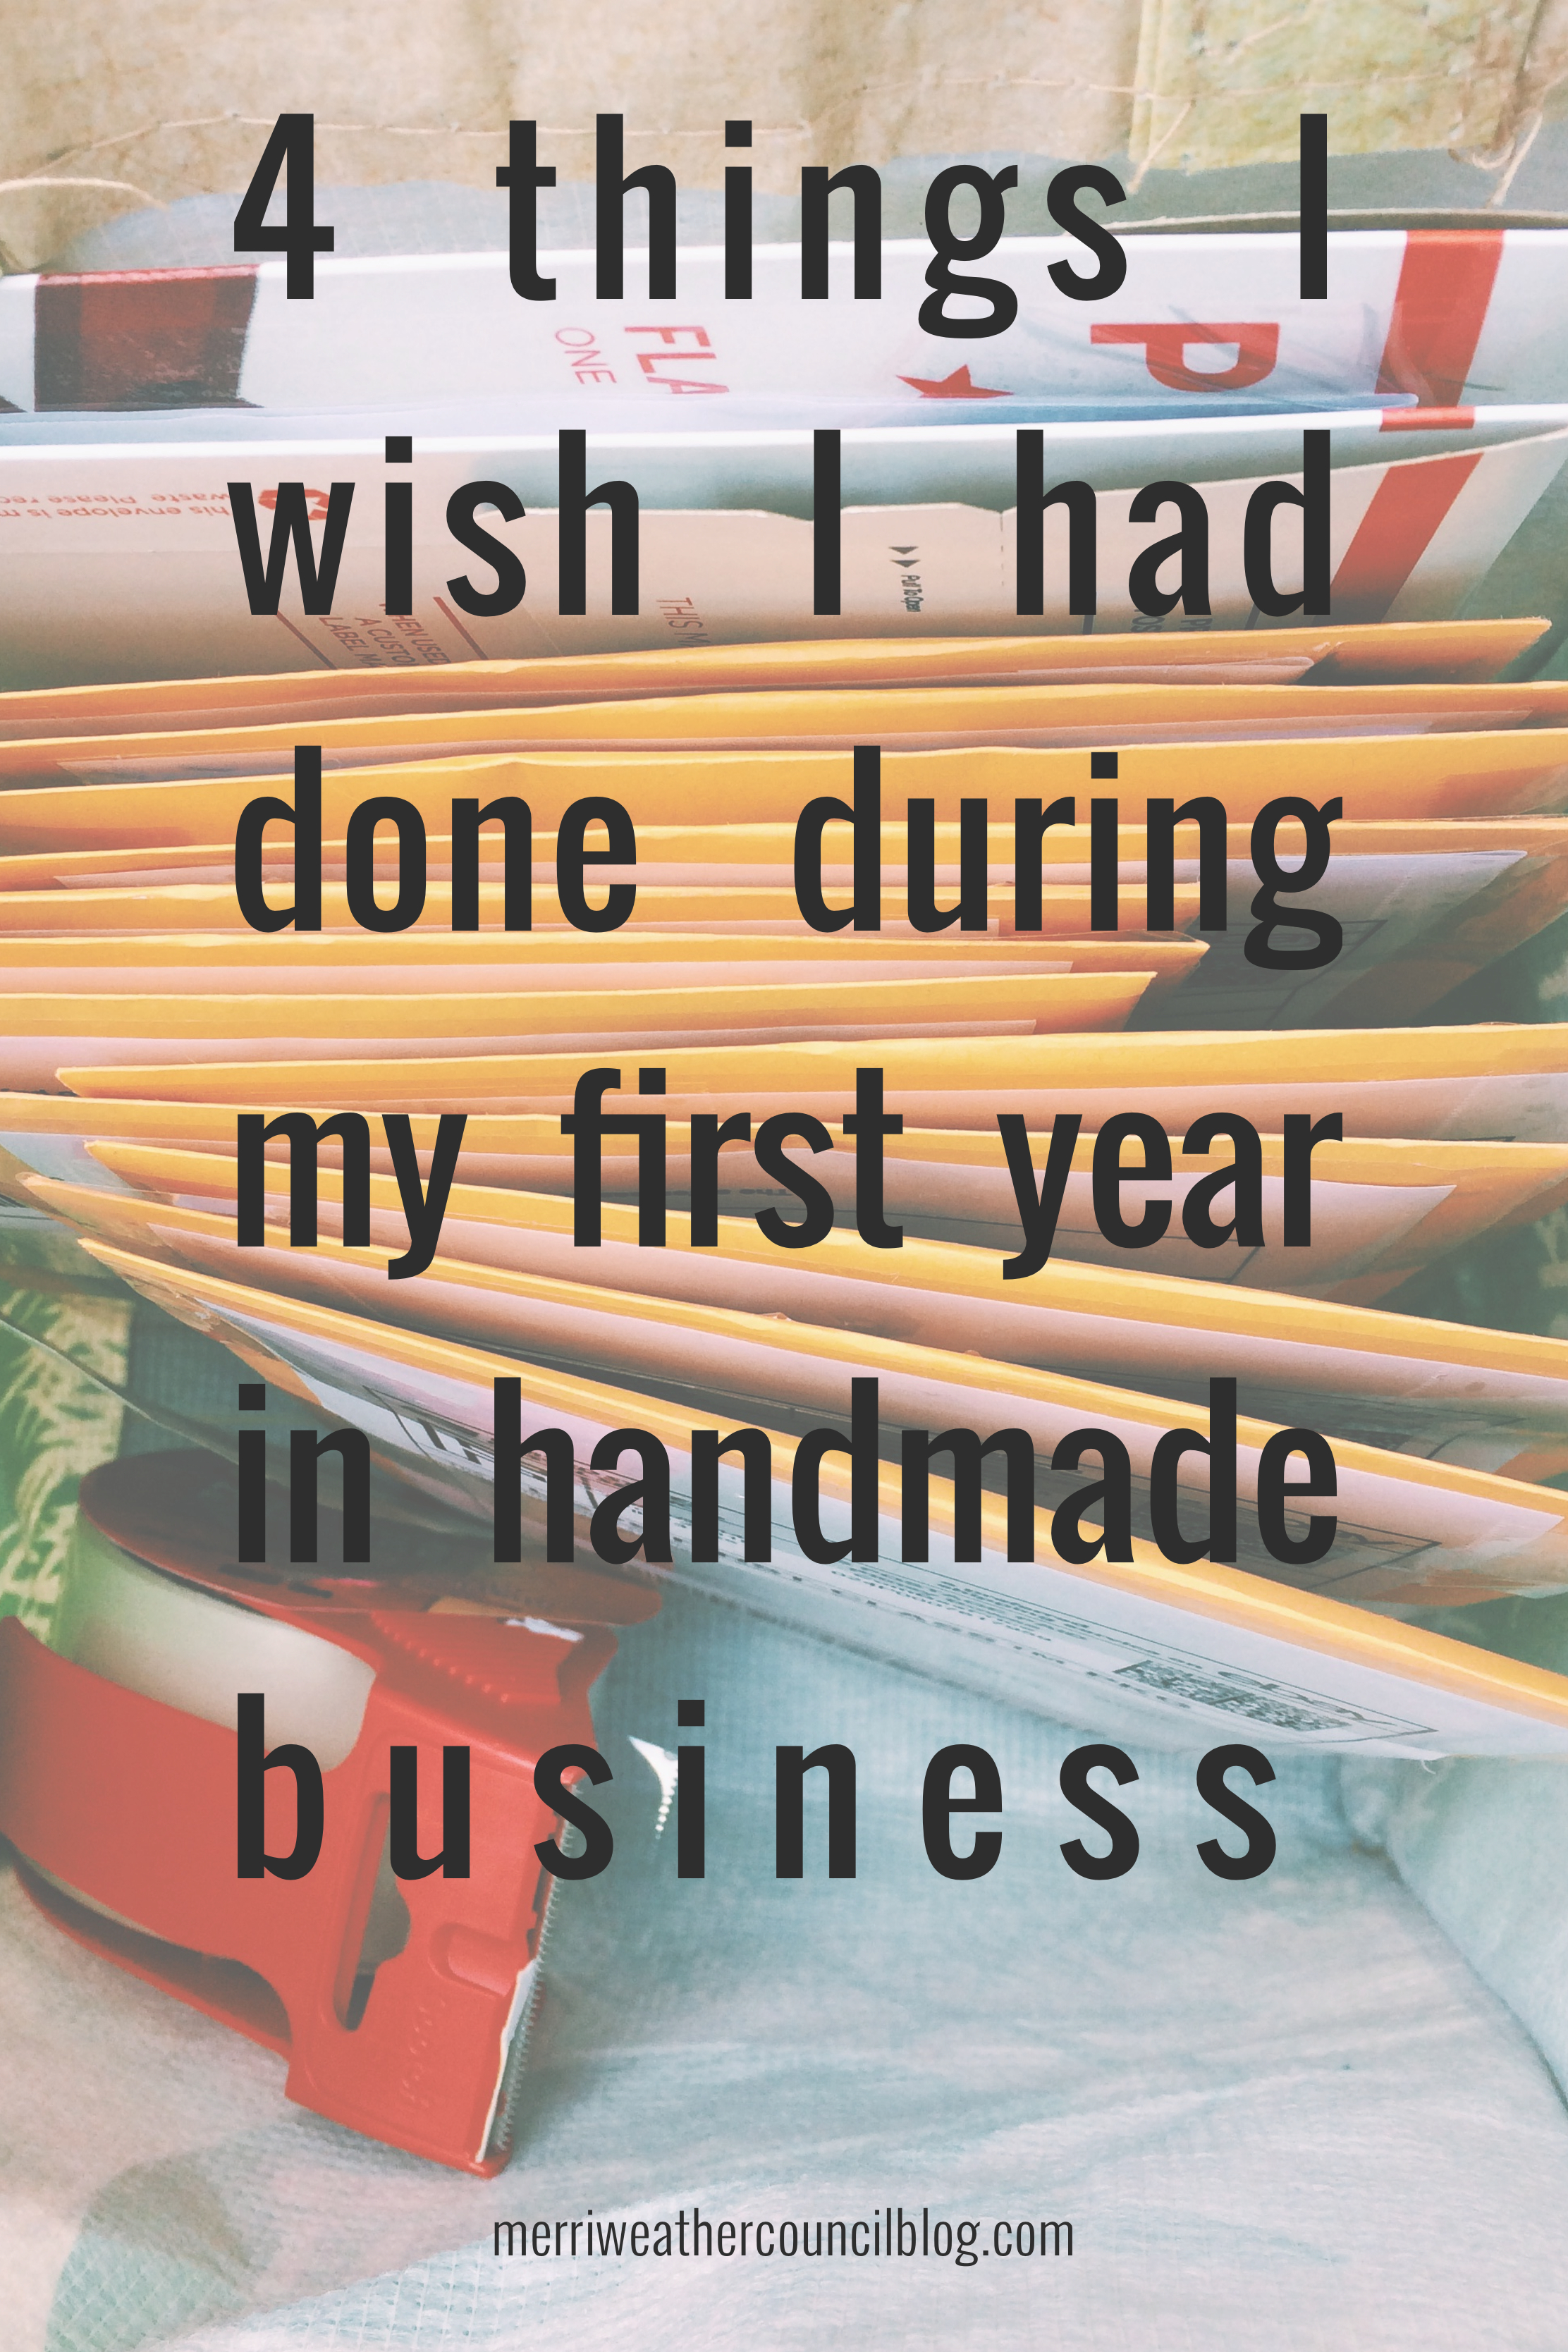 4 Things I Wish I Had Done During My First Year In Handmade Business